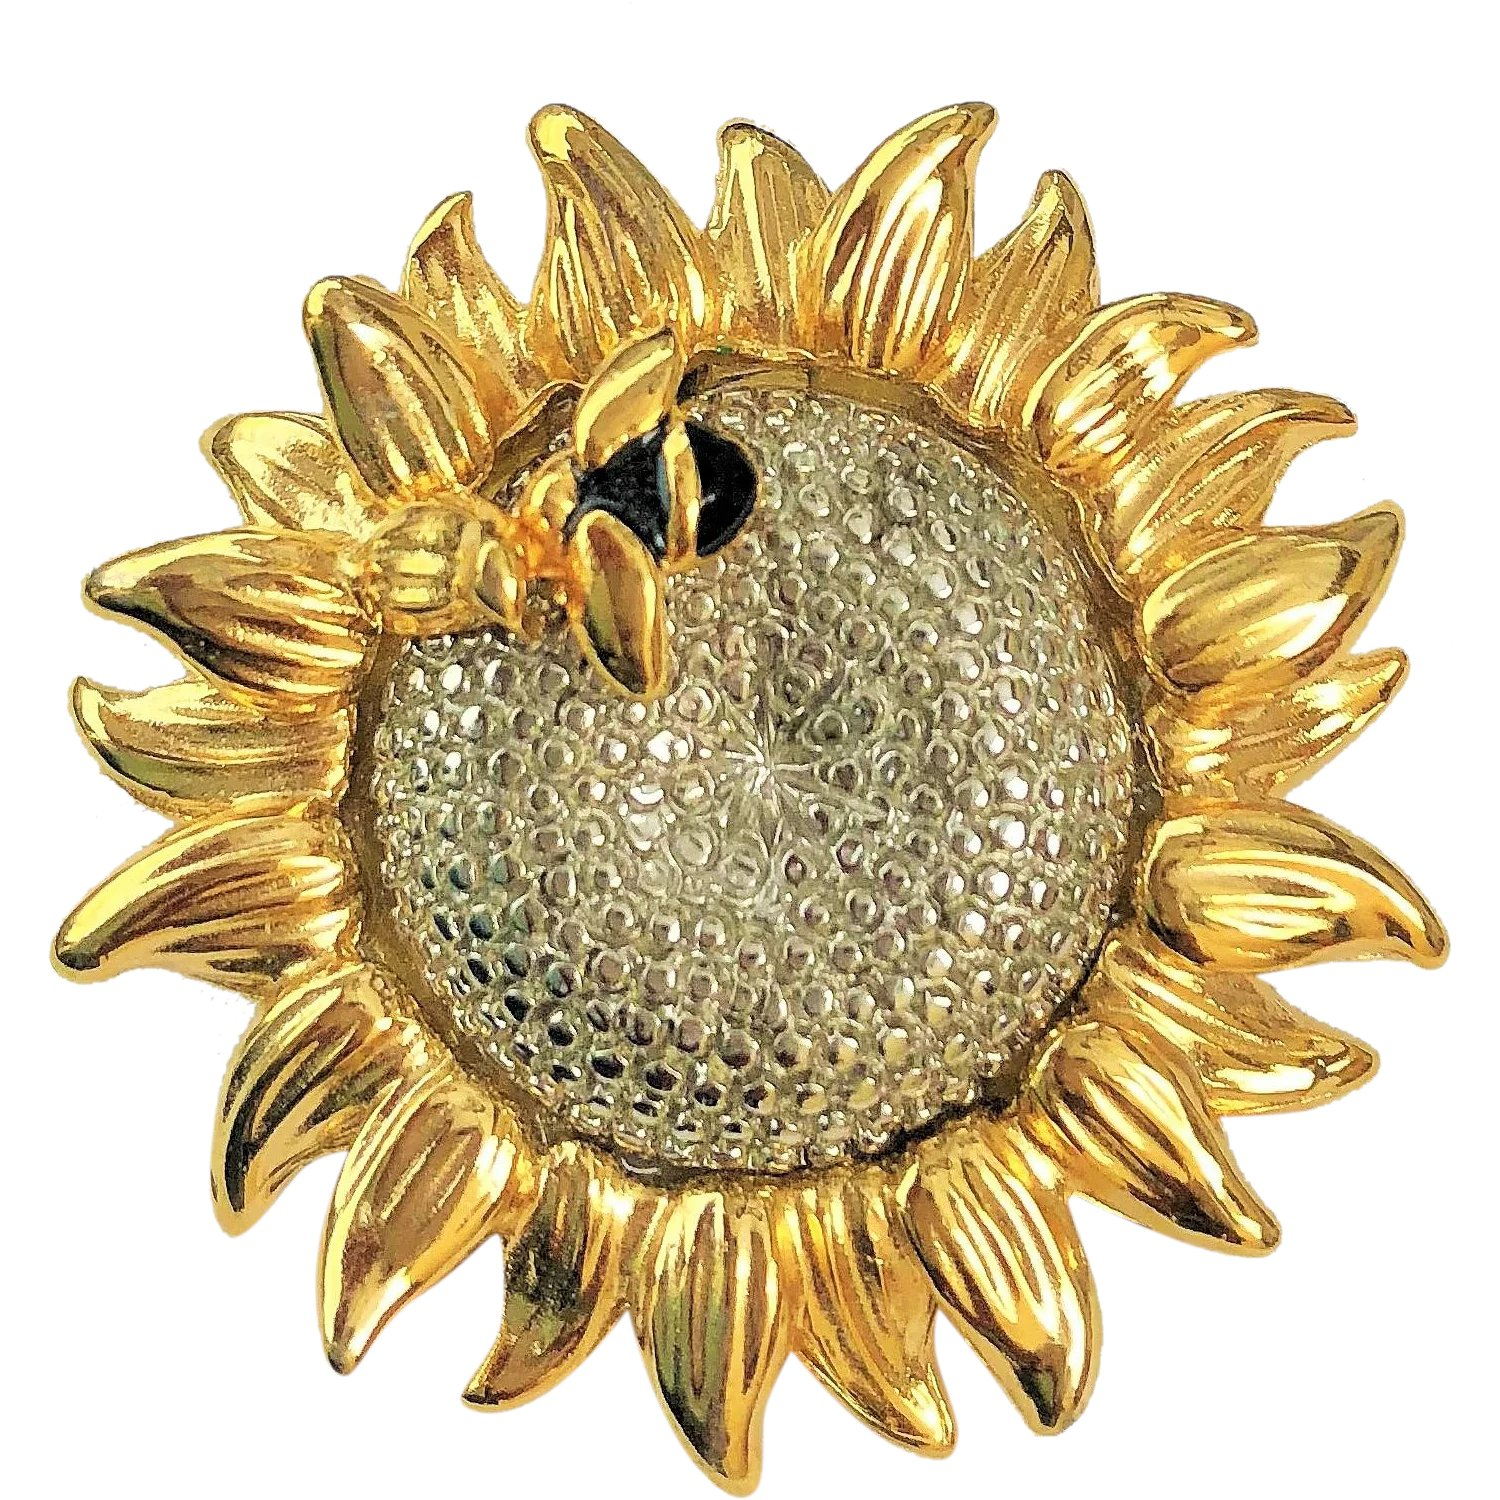 6a9880e04 LIZ CLAIBORNE Sunflower with Bumble Bee Pin Brooch : Toby the Golden Hero  Jewelry   Ruby Lane